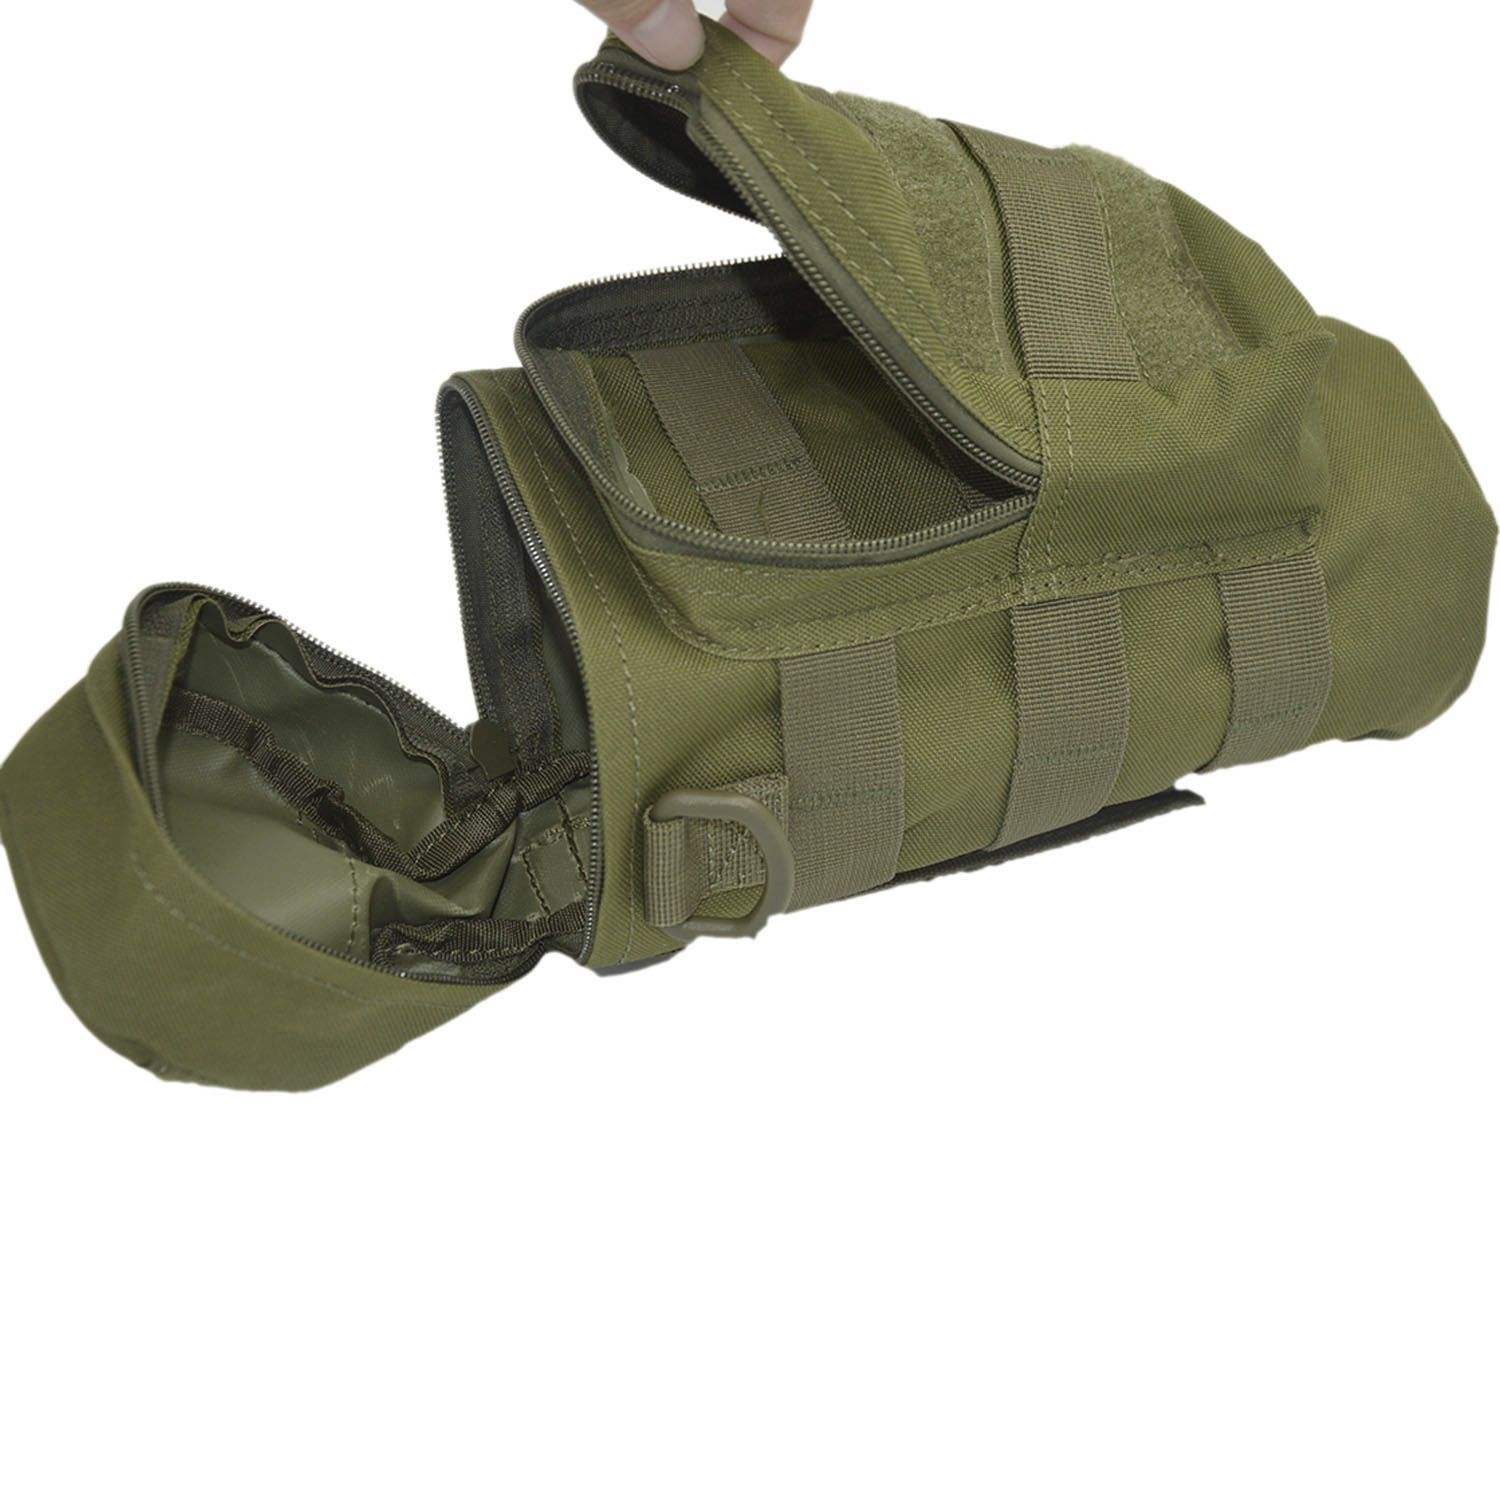 Outdoor Sport Tactical Gear Nylon Molle Zipper Camo Large Water Bottle Bag Kettle Pack w/ Mess Pouch Army Green